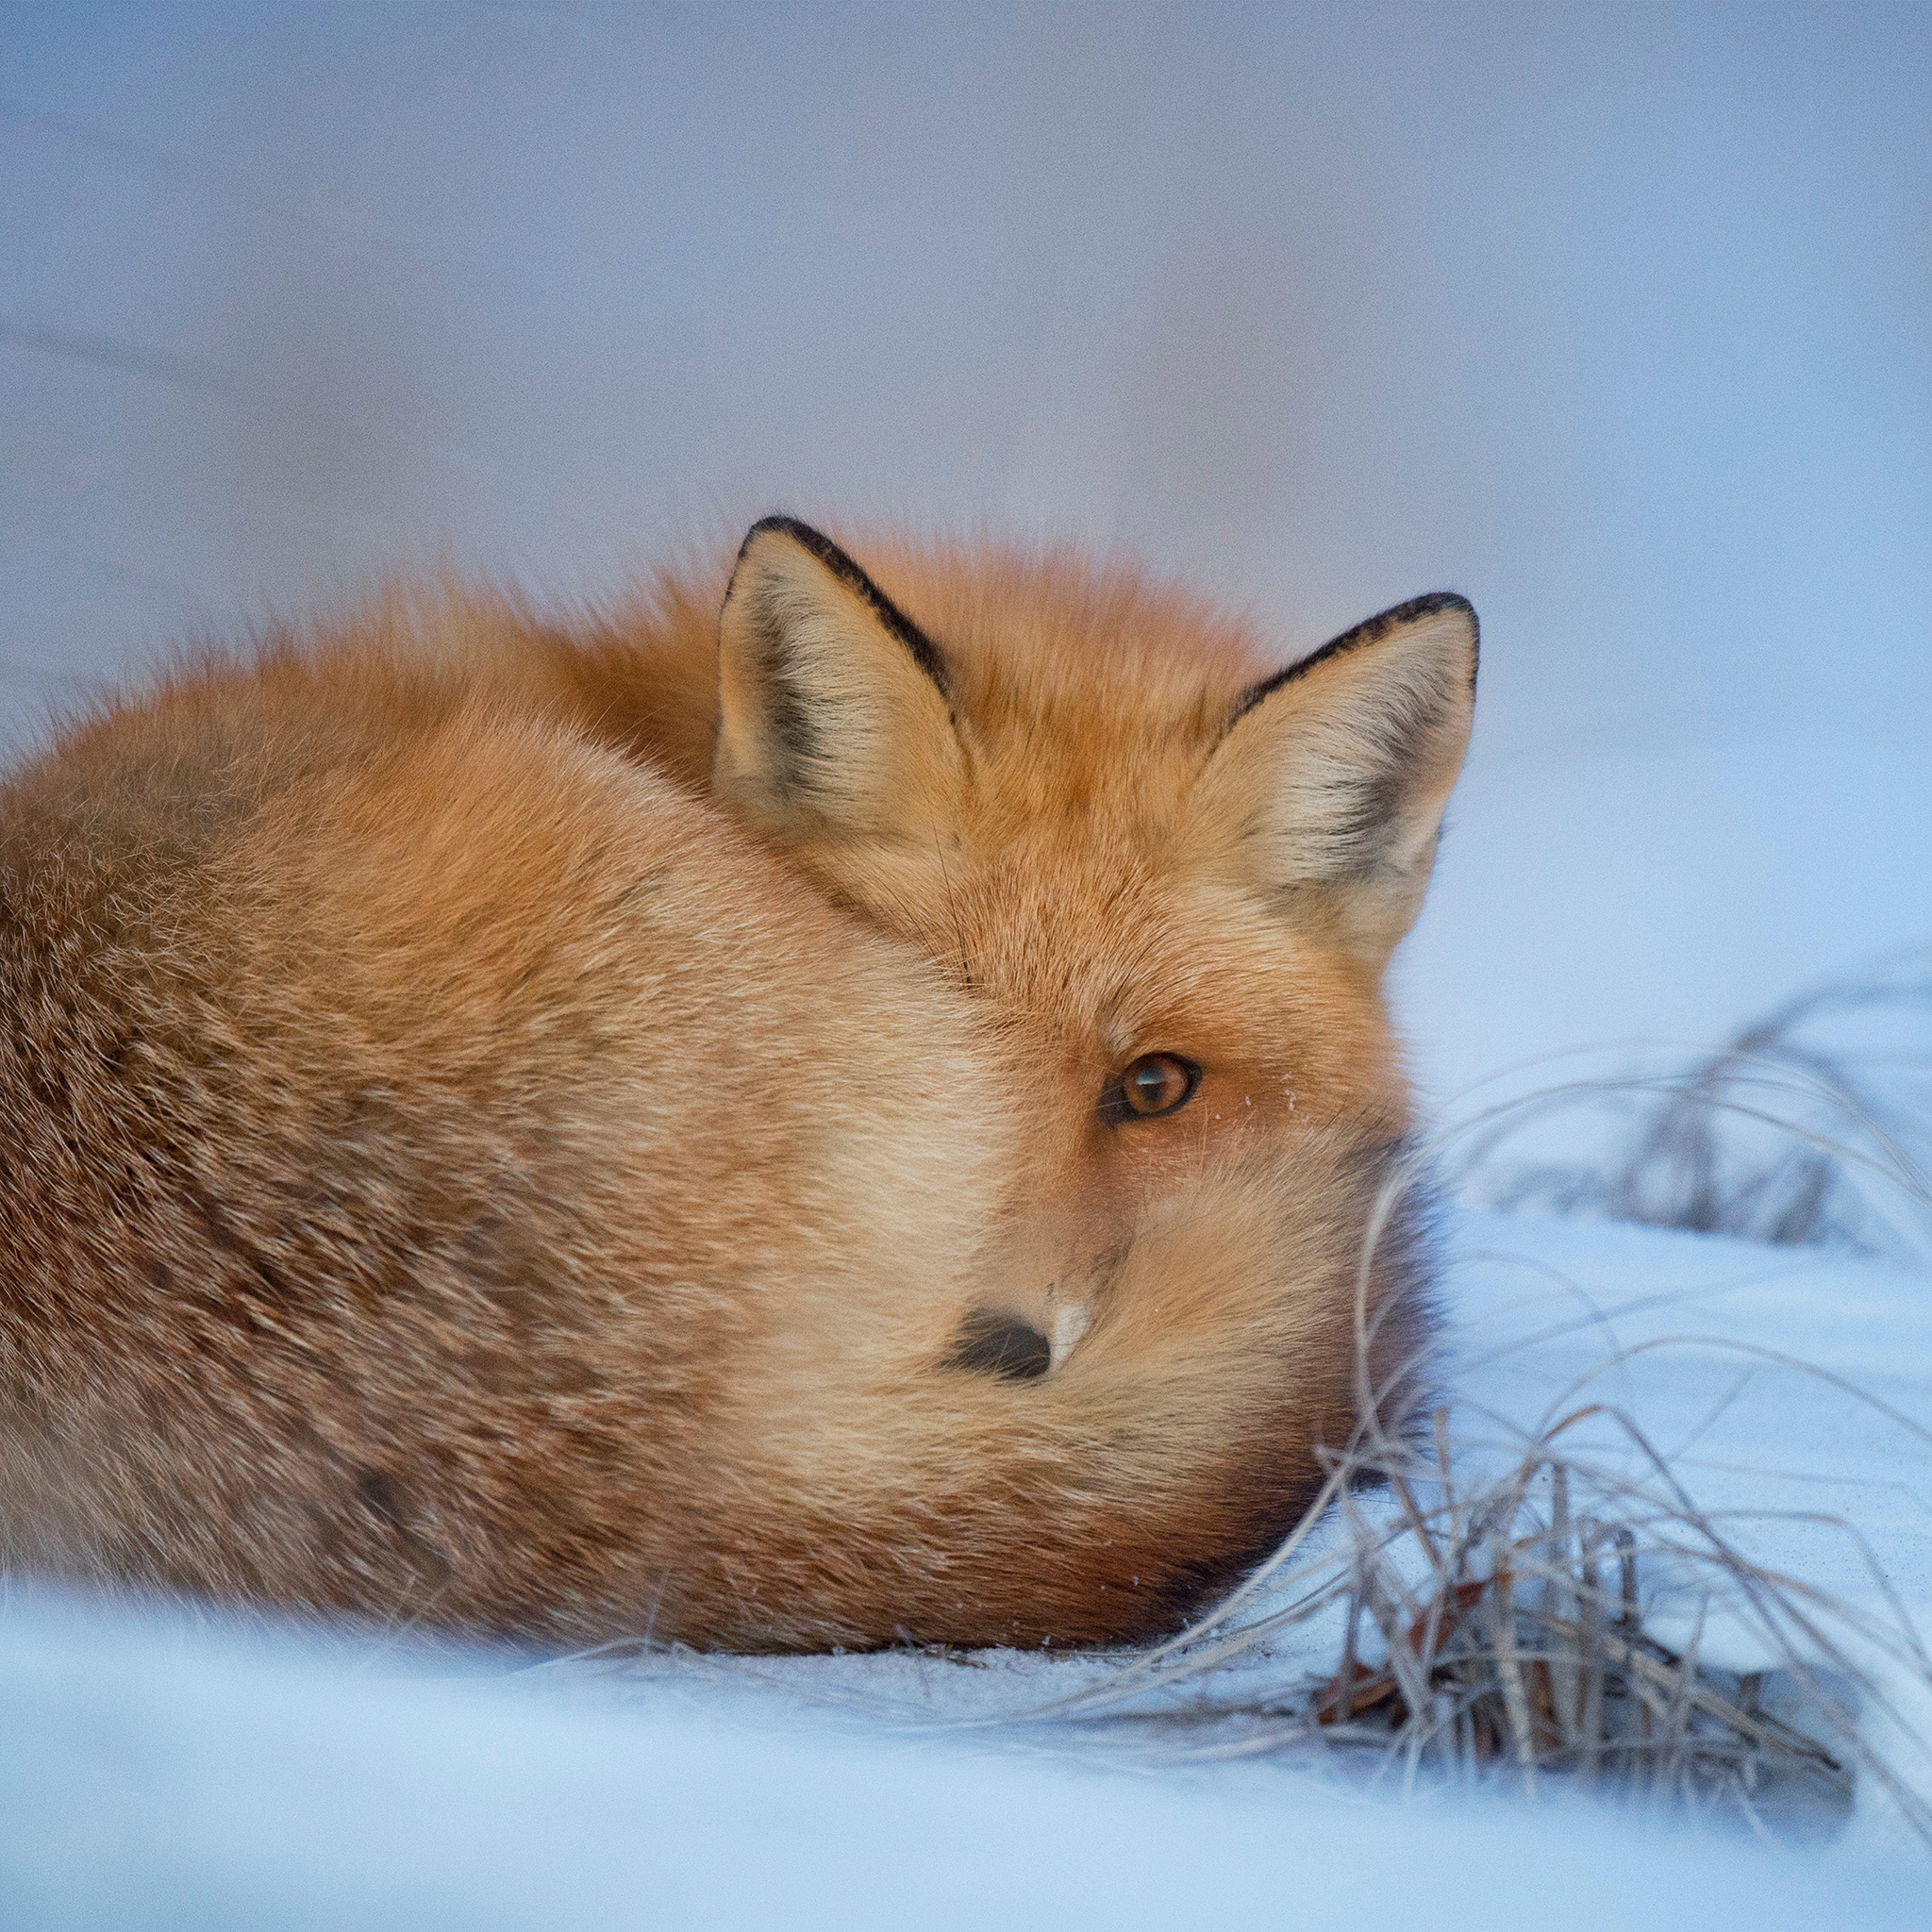 red fox in oceania essay Uni essay help : which the media demonstrates/support social acceptance the public opinion of immunocontraception of the european red fox in australia.